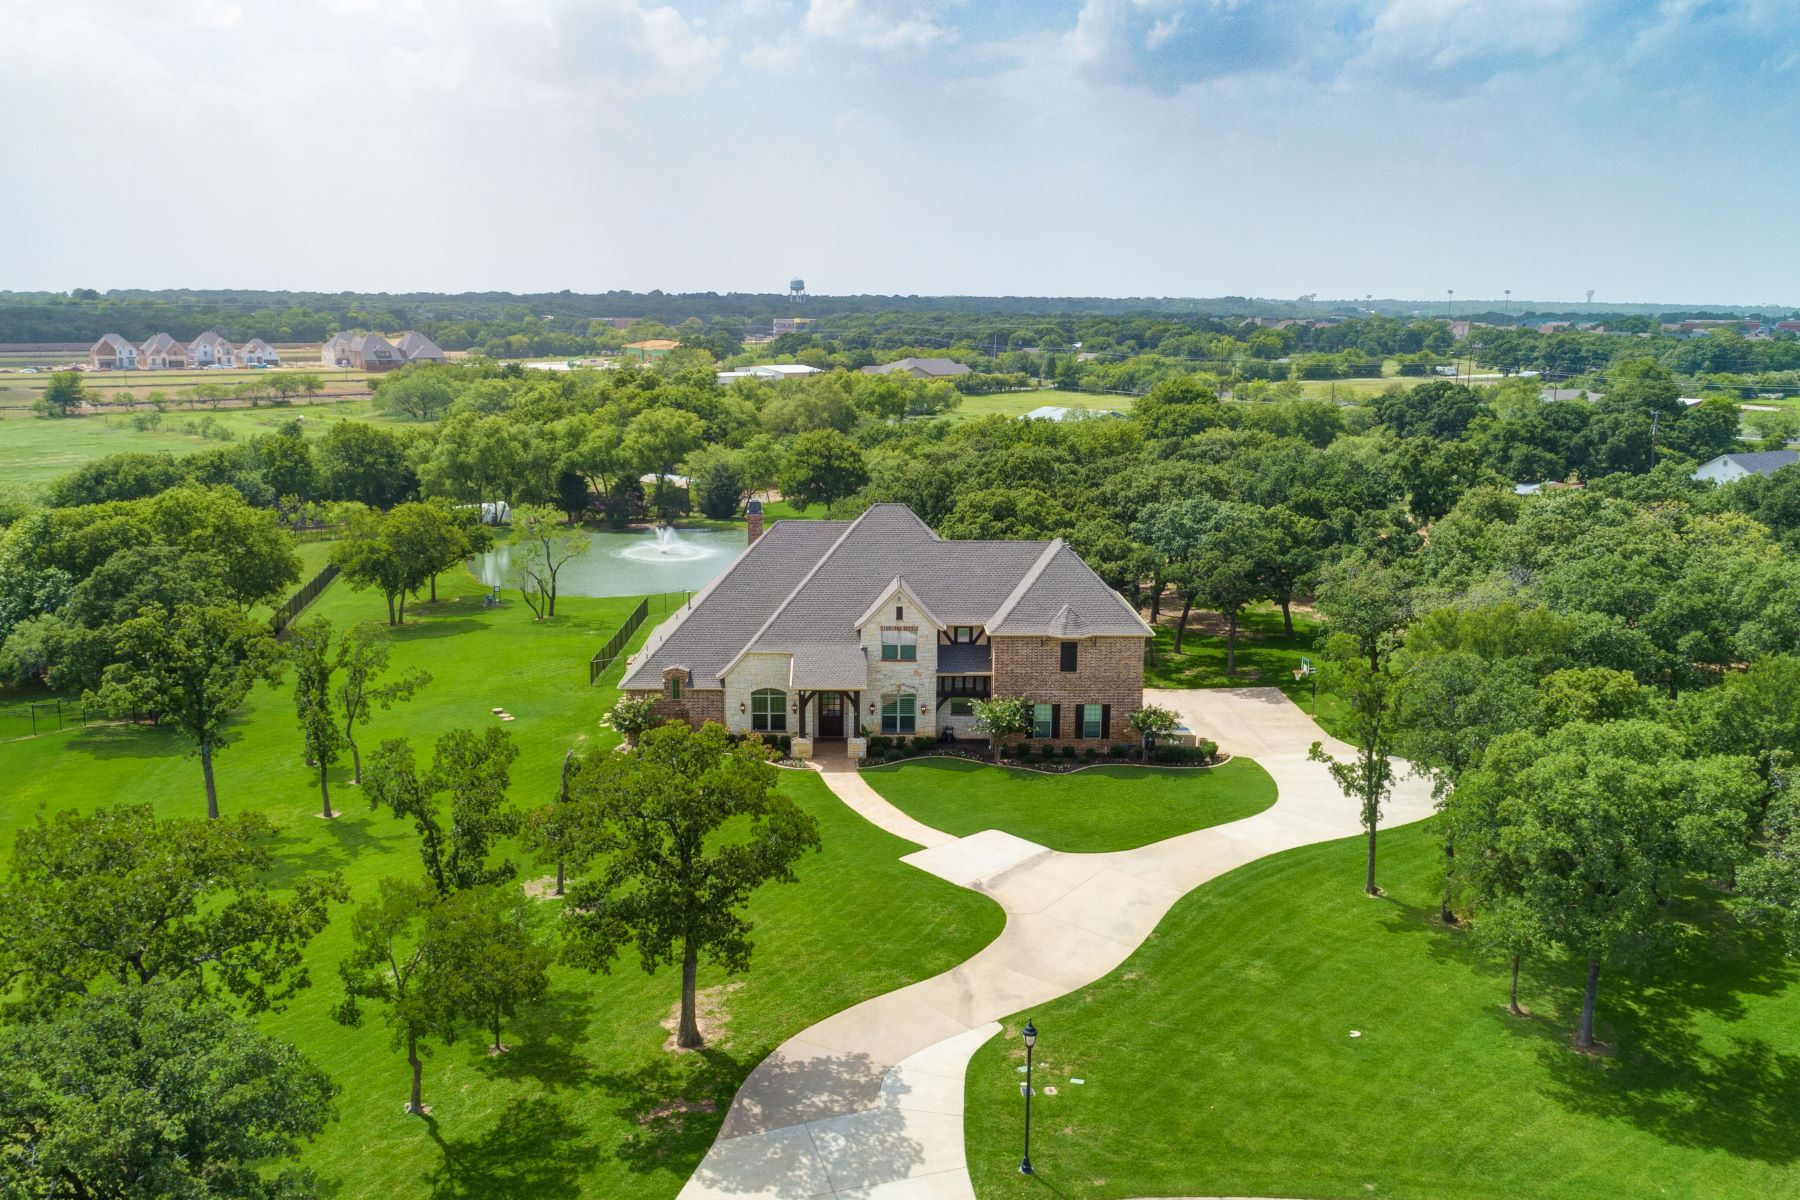 Single Family Homes for Sale at 635 Manor Drive, Argyle, TX, 76226 635 Manor Drive Argyle, Texas 76226 United States